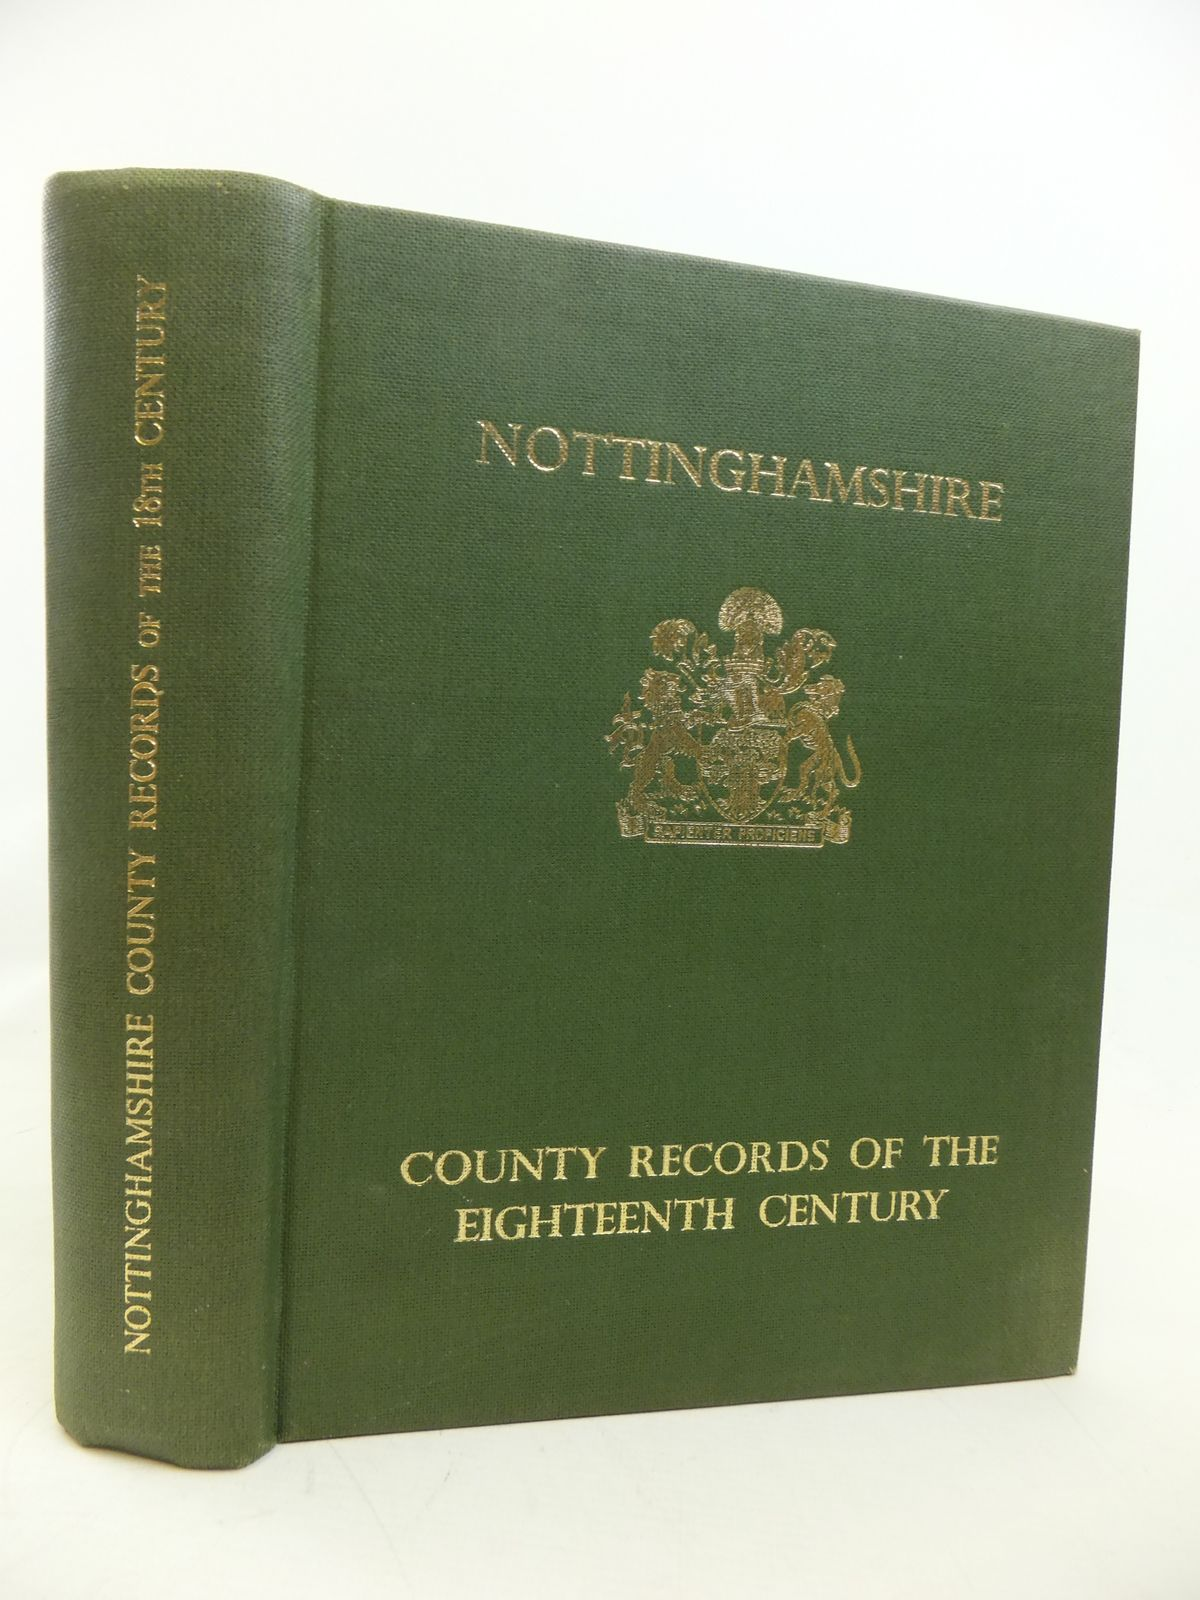 Photo of NOTTINGHAMSHIRE EXTRACTS FROM THE COUNTY RECORDS OF THE EIGHTEENTH CENTURY written by Meaby, K. Tweedale published by Thos. Forman & Sons Ltd. (STOCK CODE: 2115888)  for sale by Stella & Rose's Books